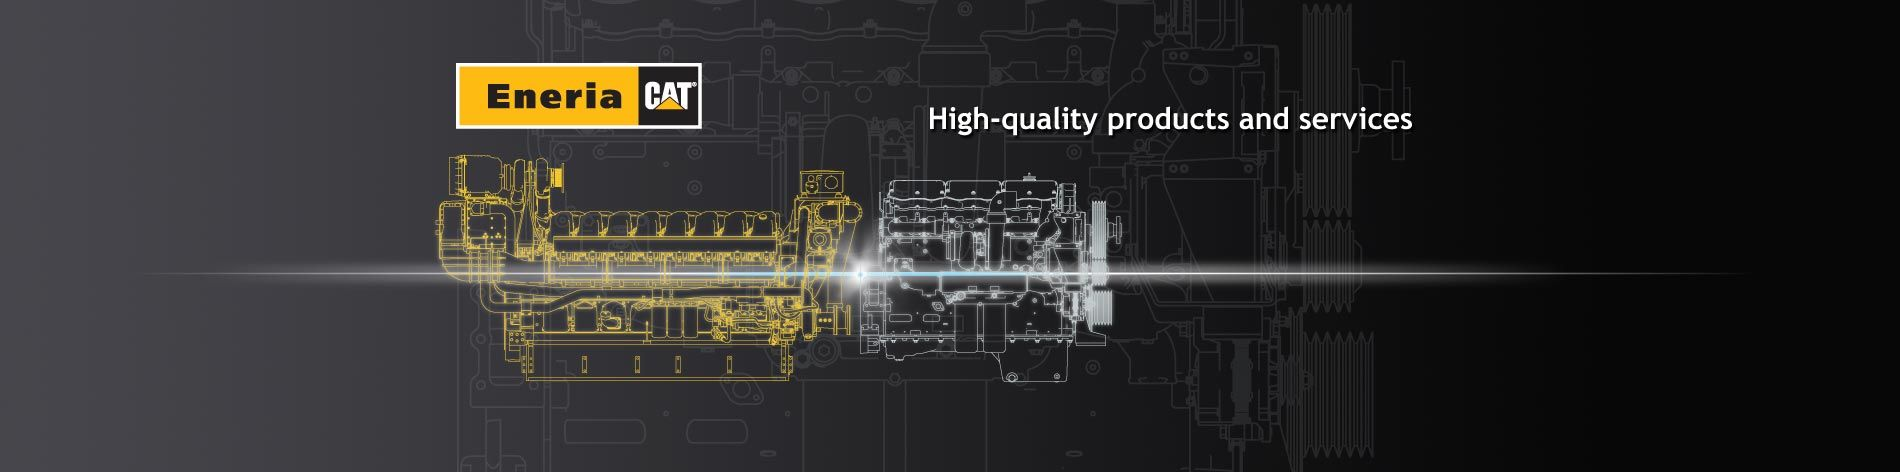 We offer our customers comprehensive, competitively priced and environmentally friendly solutions that meet their power generation and engine needs.